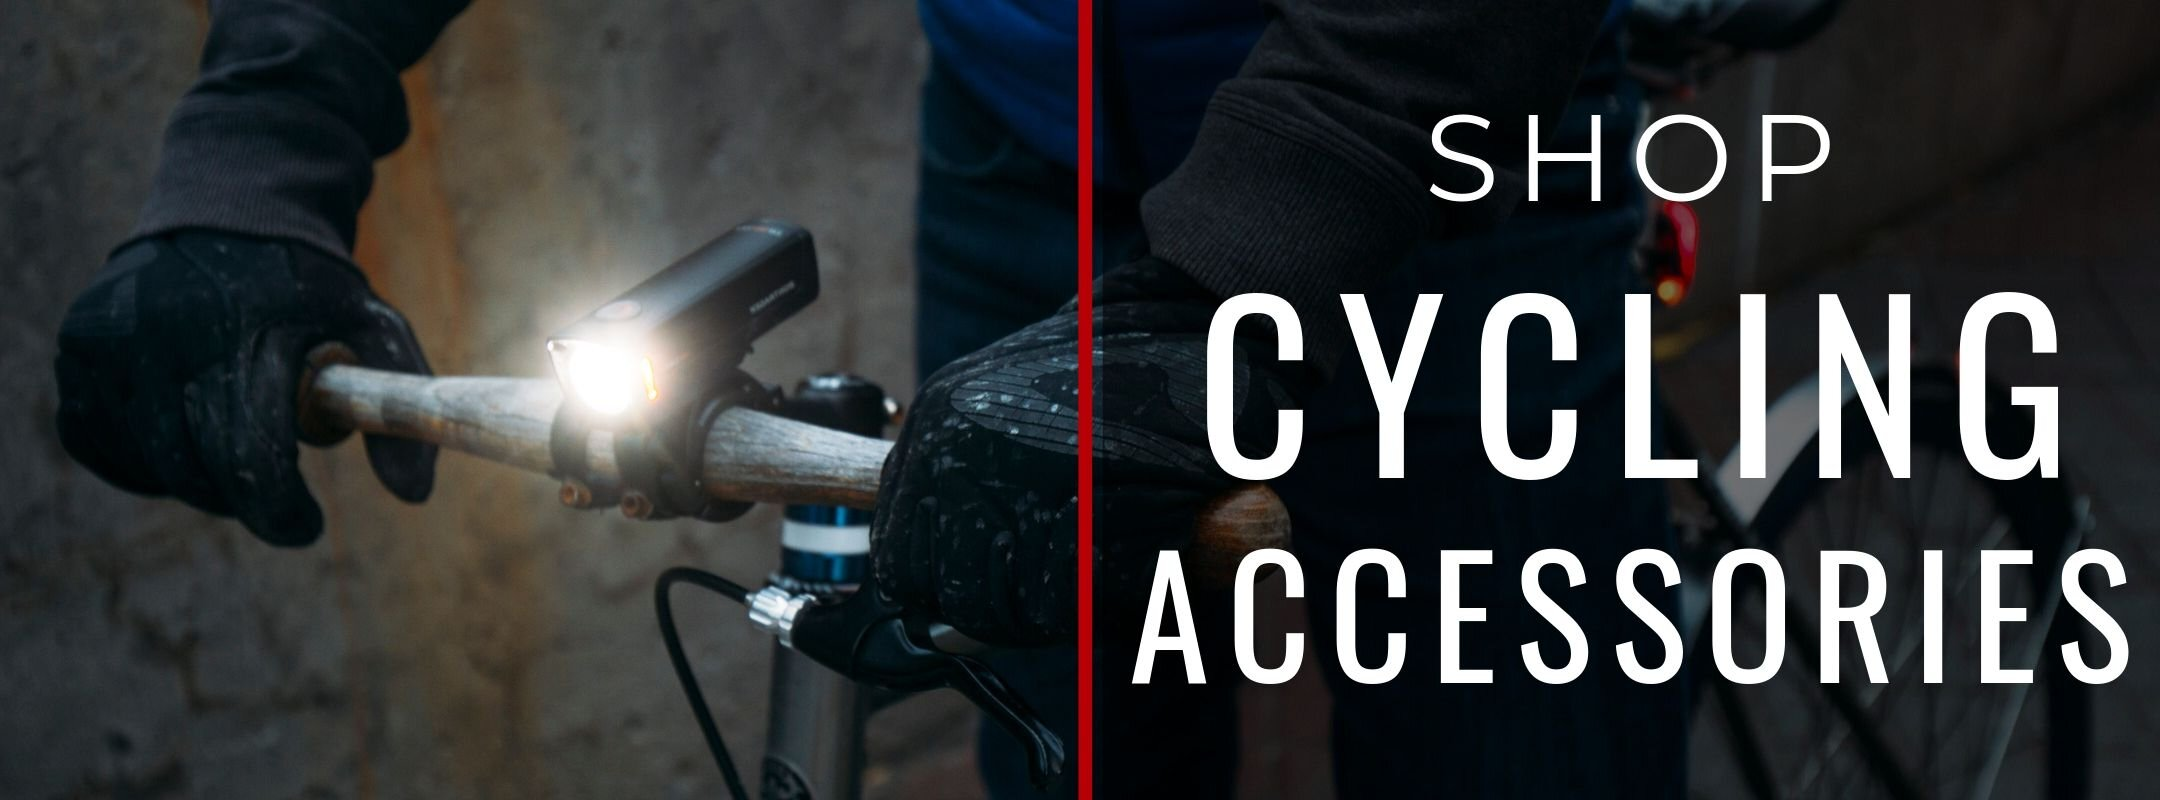 SHOP CYCLING ACCESSORIES